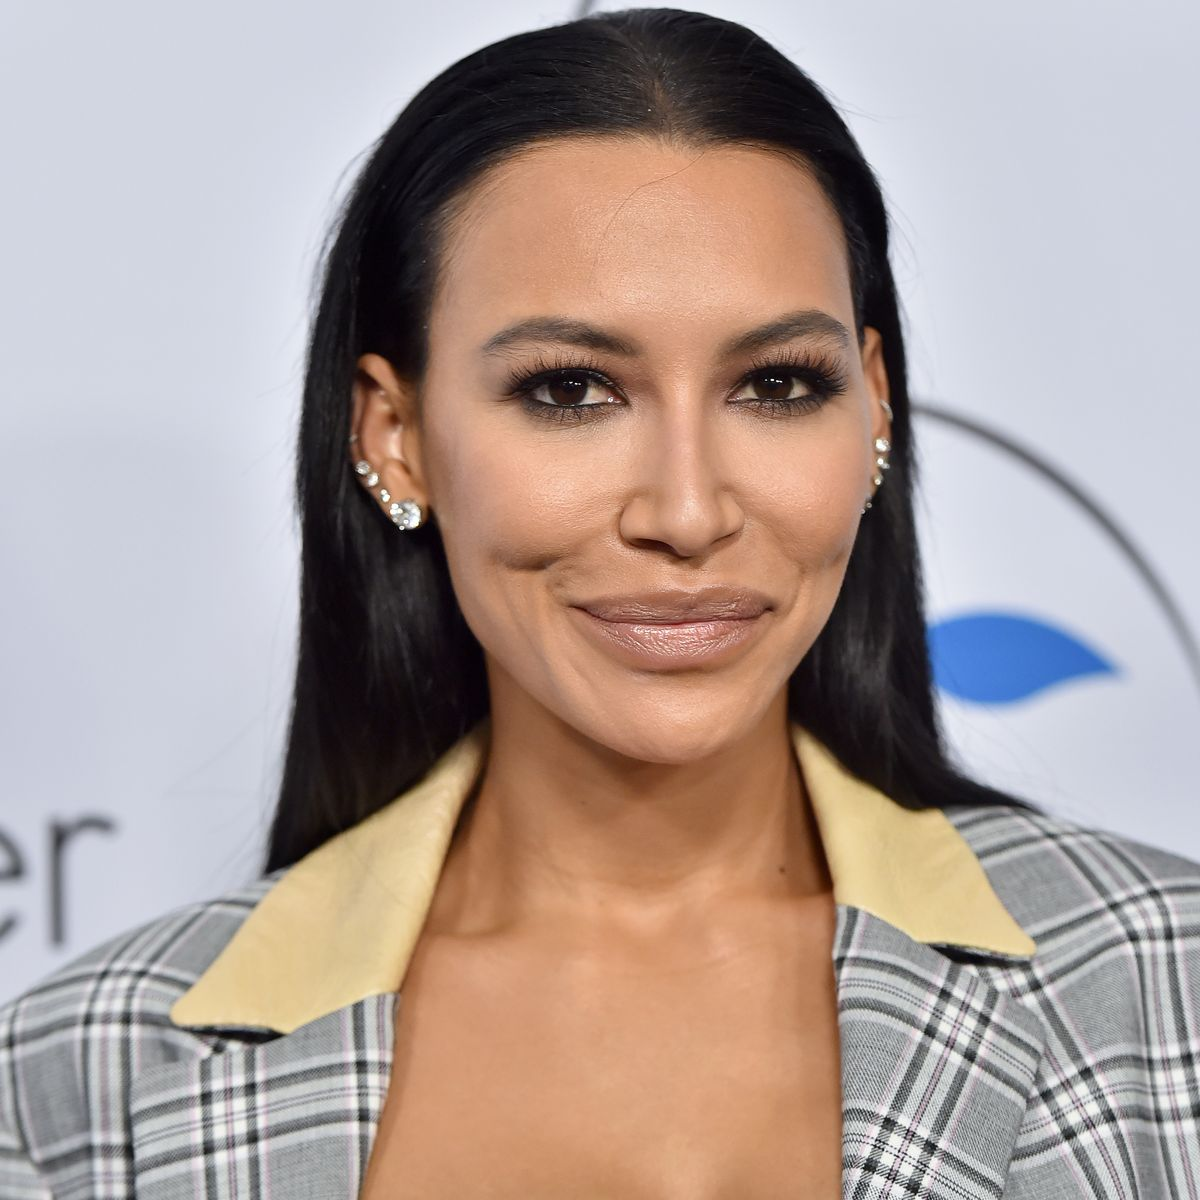 a2 - 'Glee' actress, Naya Rivera lacking after younger boy discovered alone on boat in Lake Piru